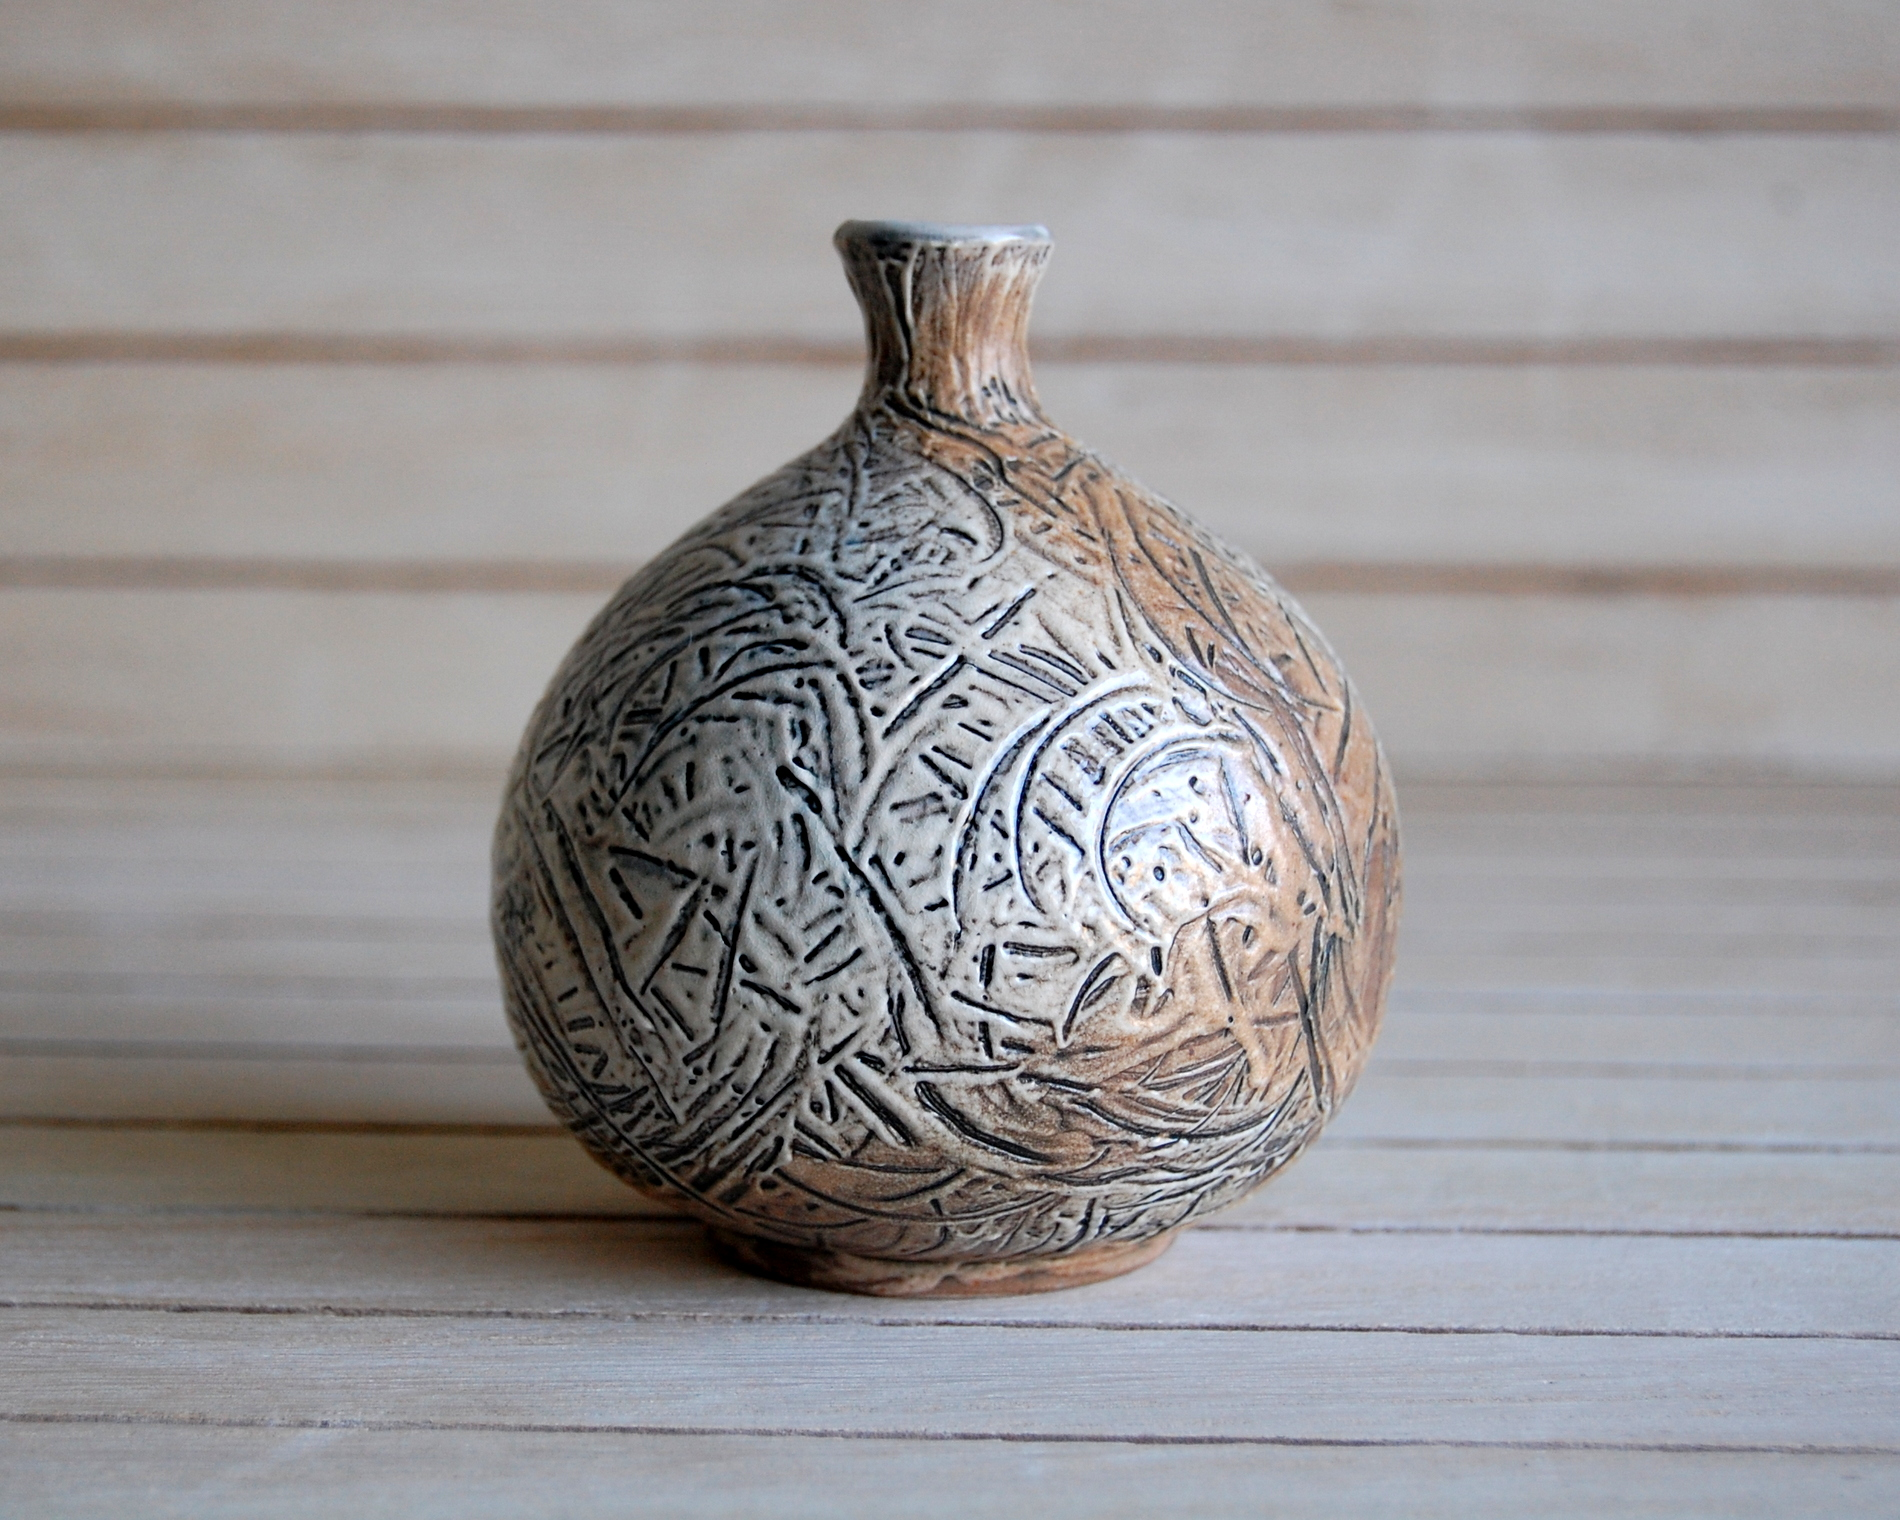 Little soda fired bottle, 4.5 inches high, with stained slip design and light brown flashing